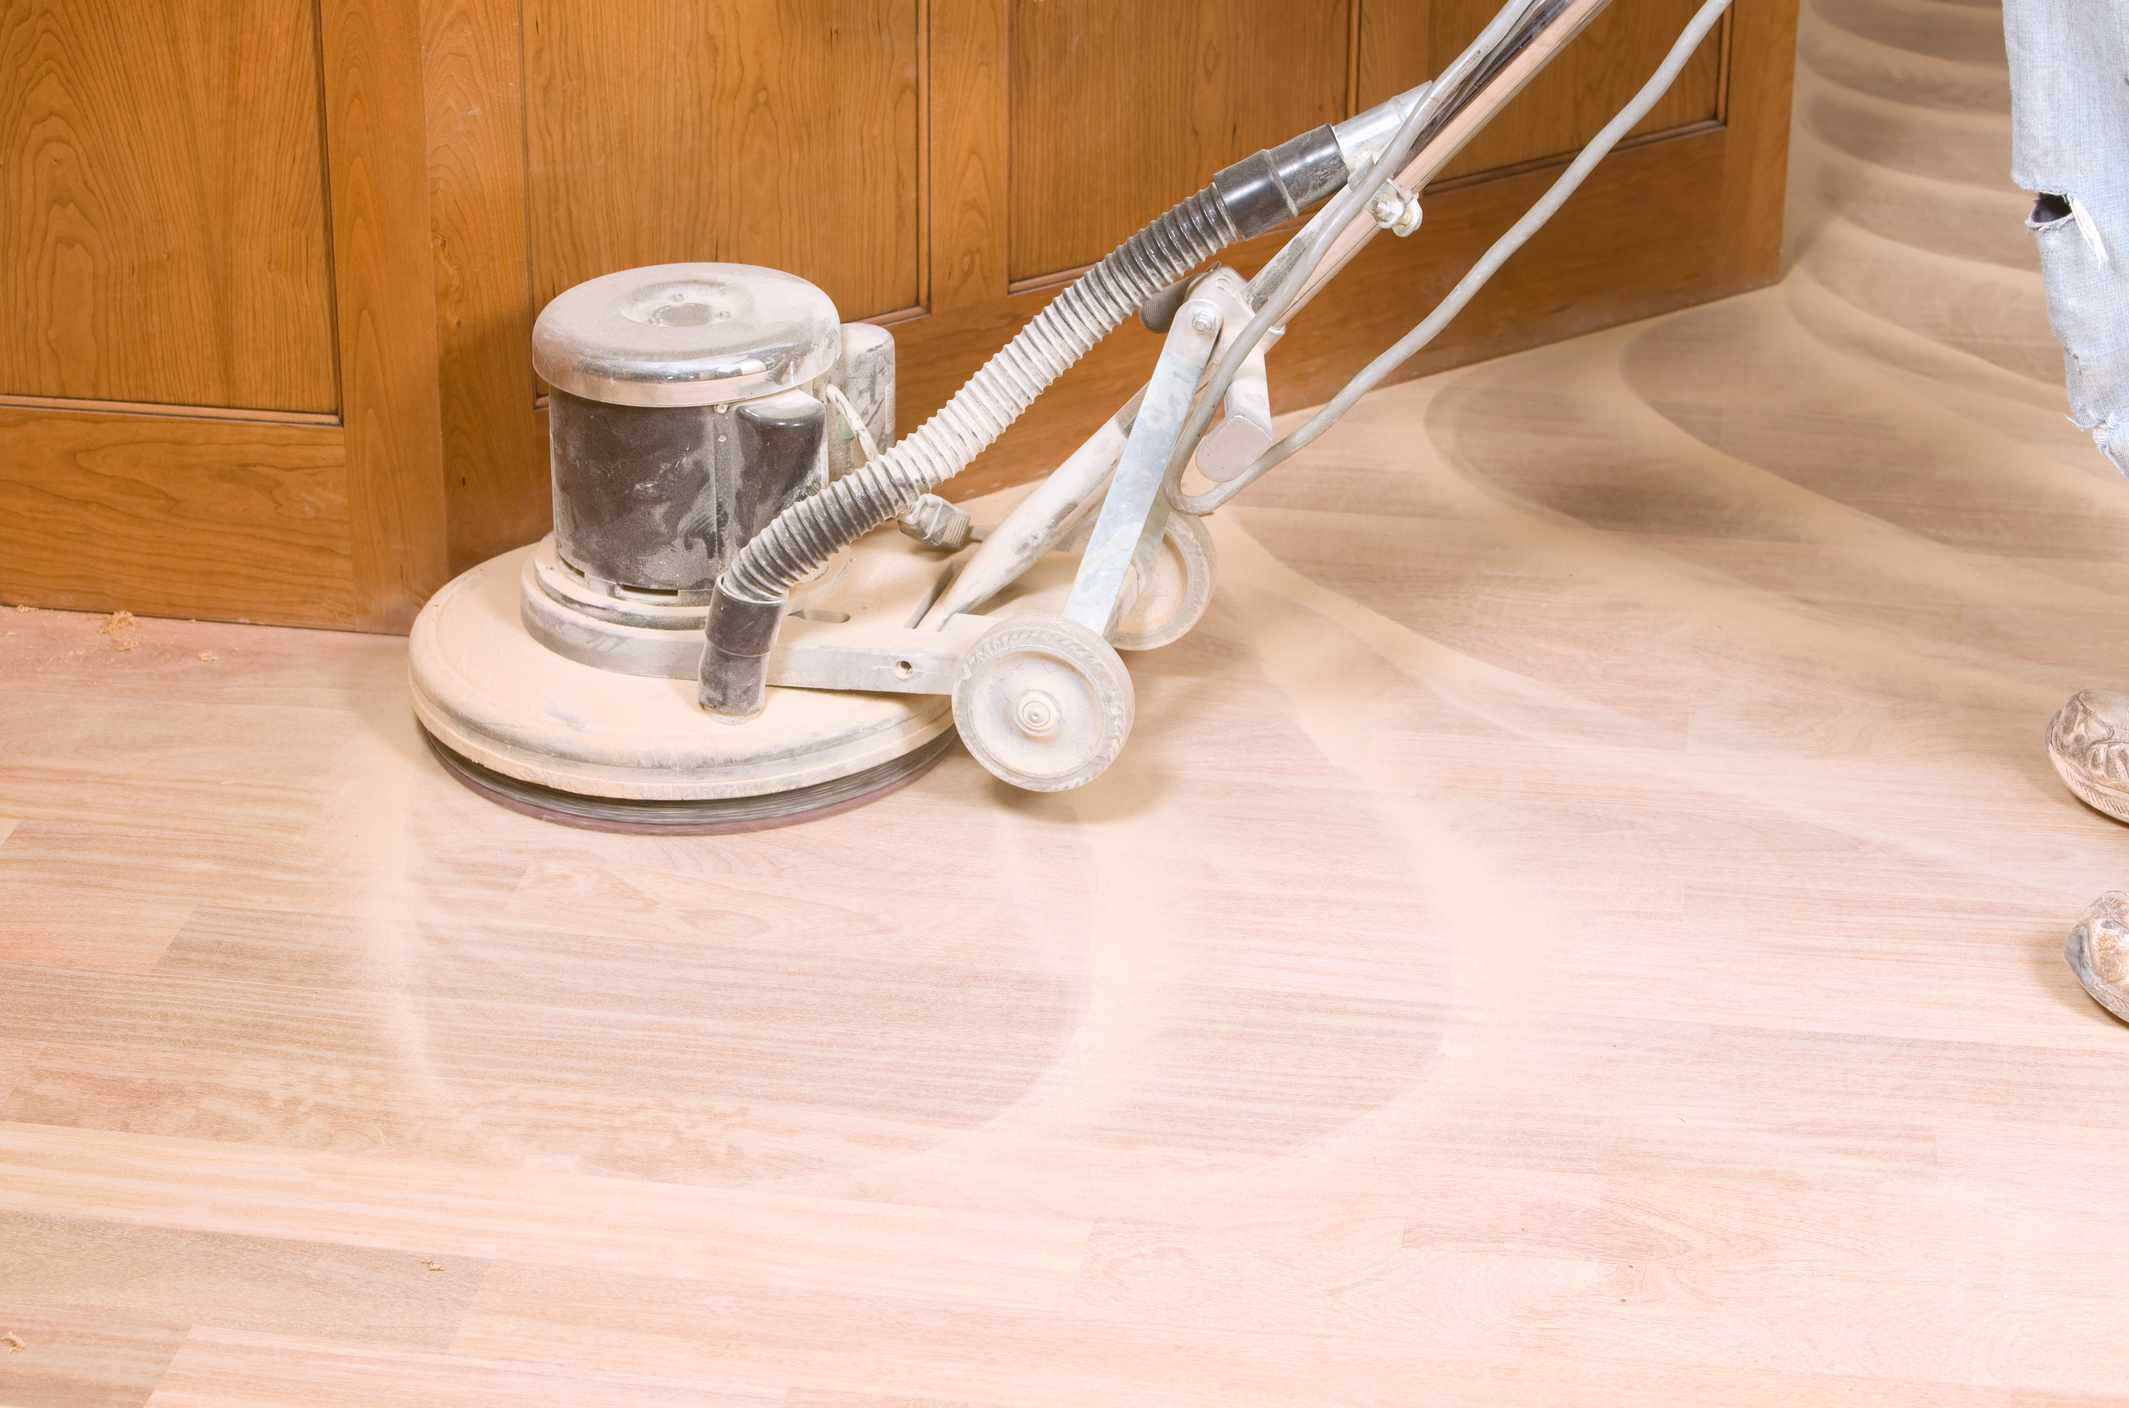 hardwood flooring finishing techniques of how to sand hardwood floors pertaining to gettyimages 183768766 587b01a45f9b584db3a5315f